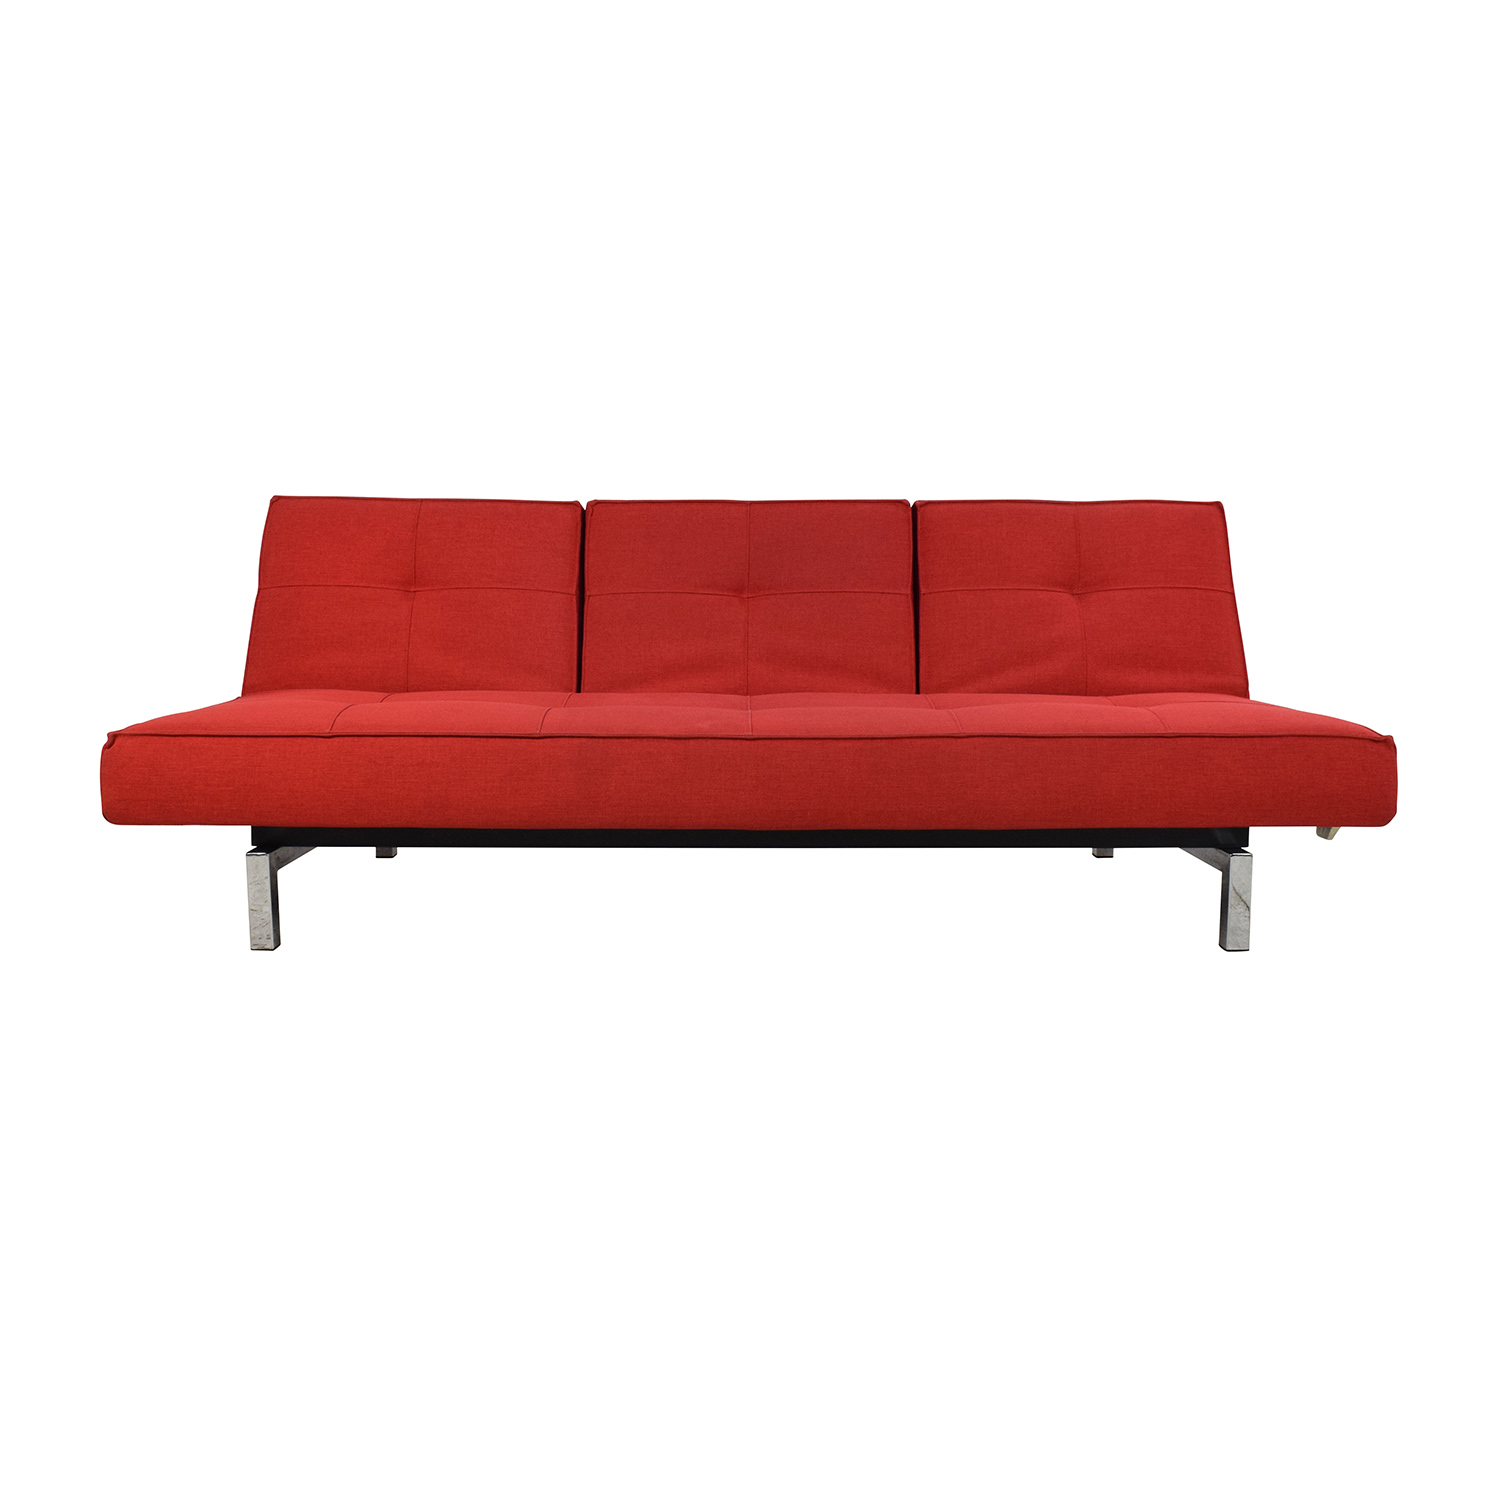 51 Off Room Board Room Board Eden Convertible Red Sofa Sofas